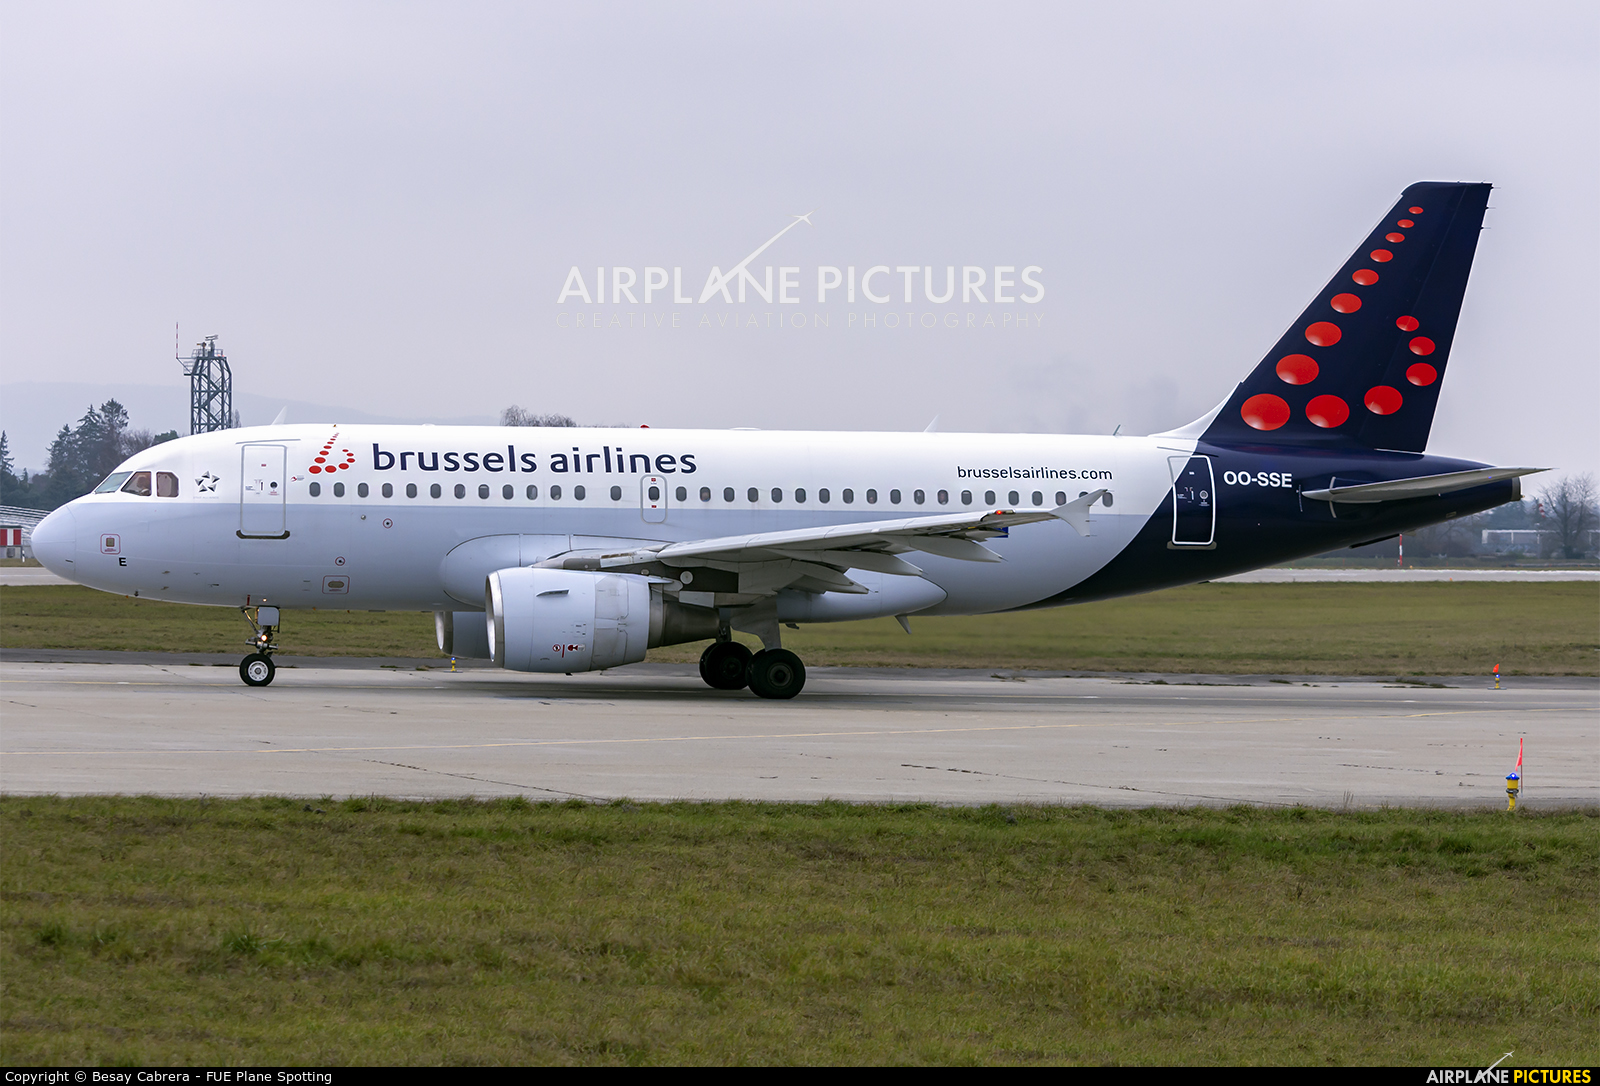 Brussels Airlines OO-SSE aircraft at Geneva Intl